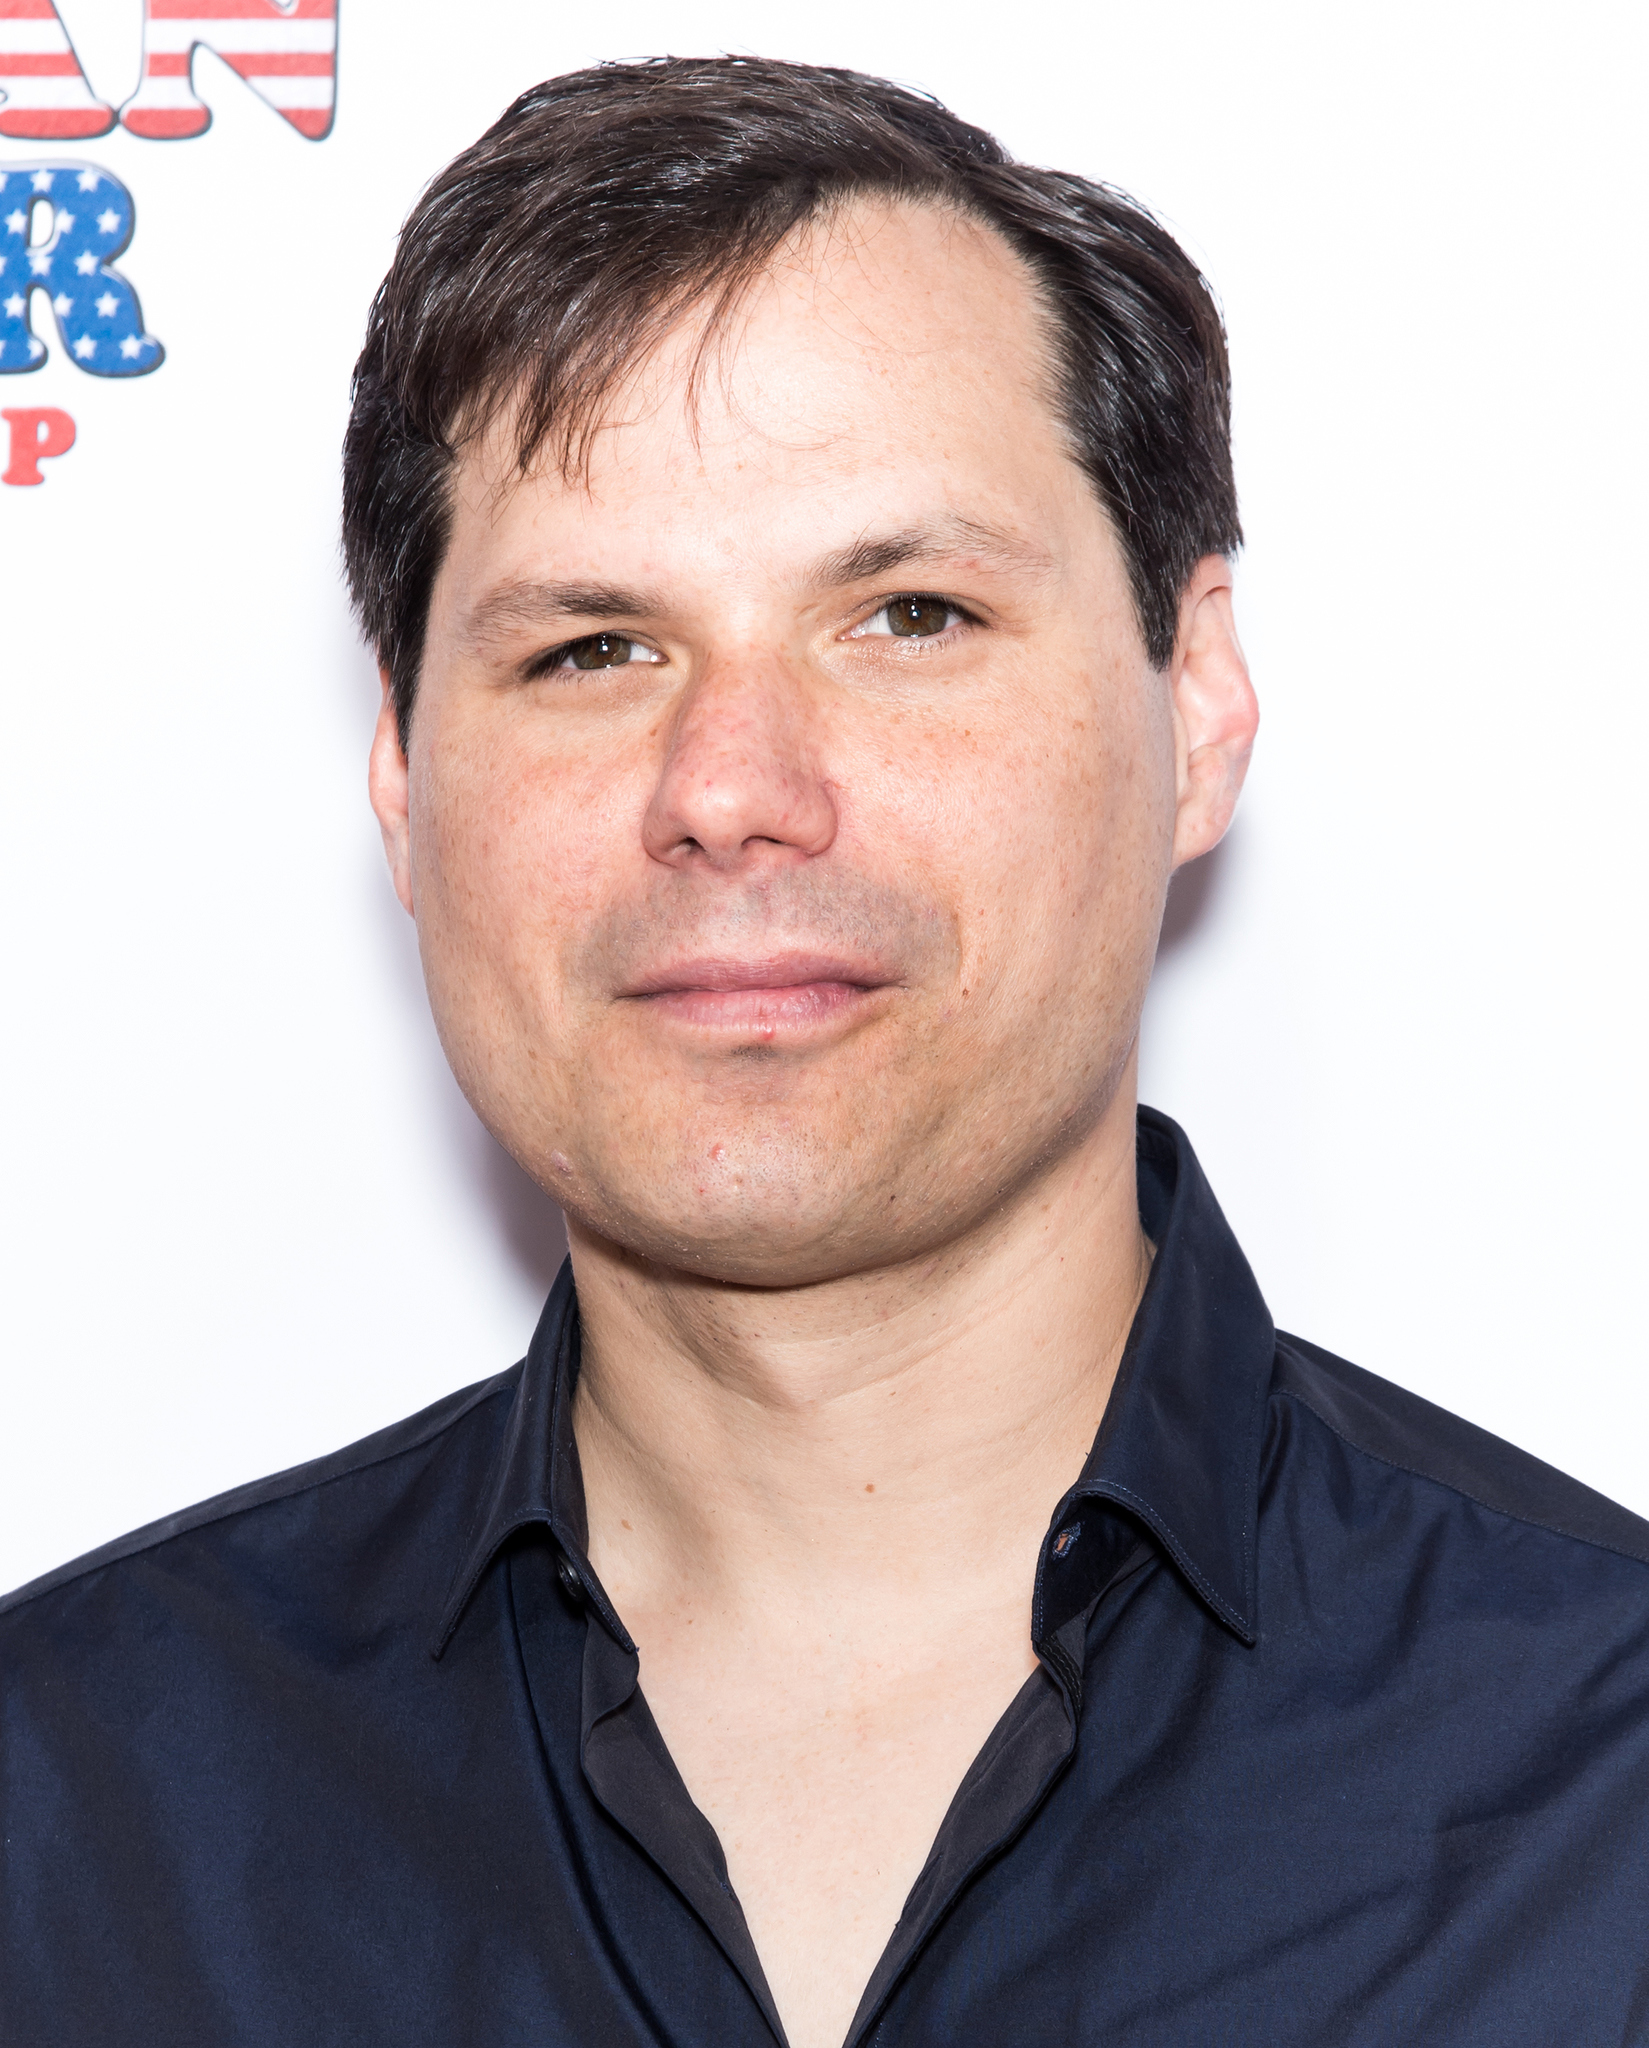 michael ian black essays My custom van and 50 other mind-blowing essays that will blow your mind all over your face by michael ian black.